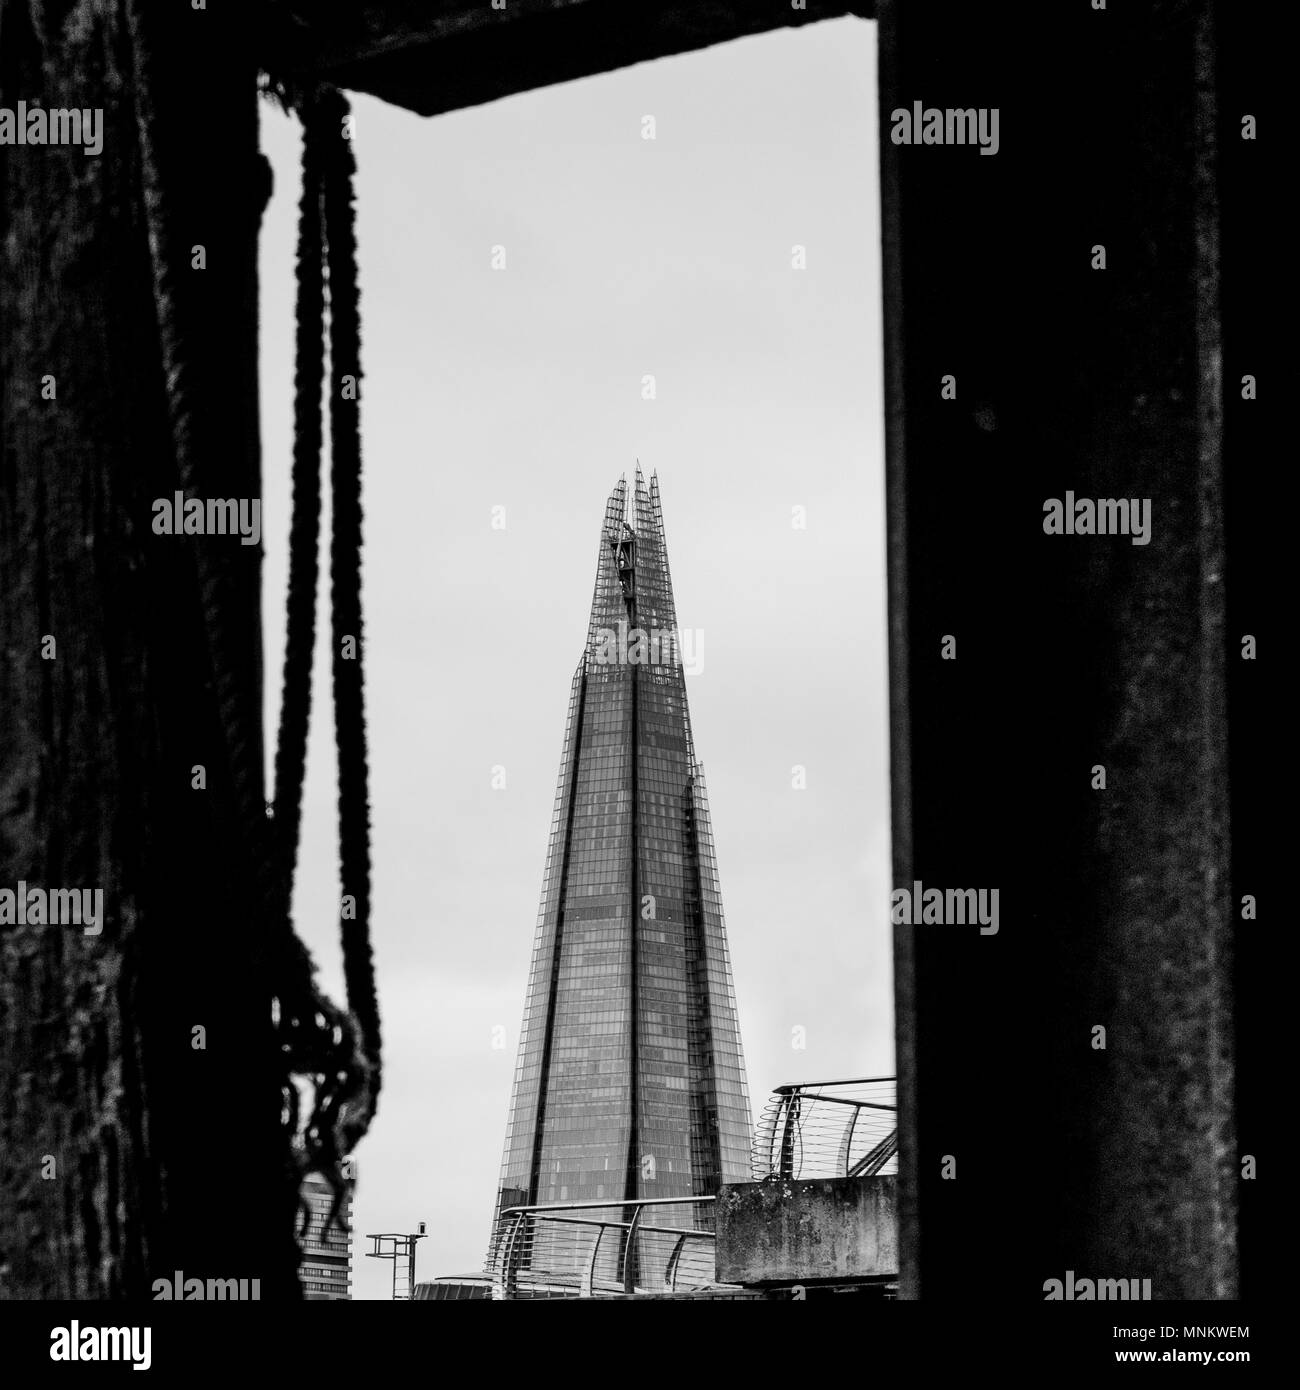 The Shard framed between two wooden jetty posts on the shore of the river Thames, London, UK. - Stock Image